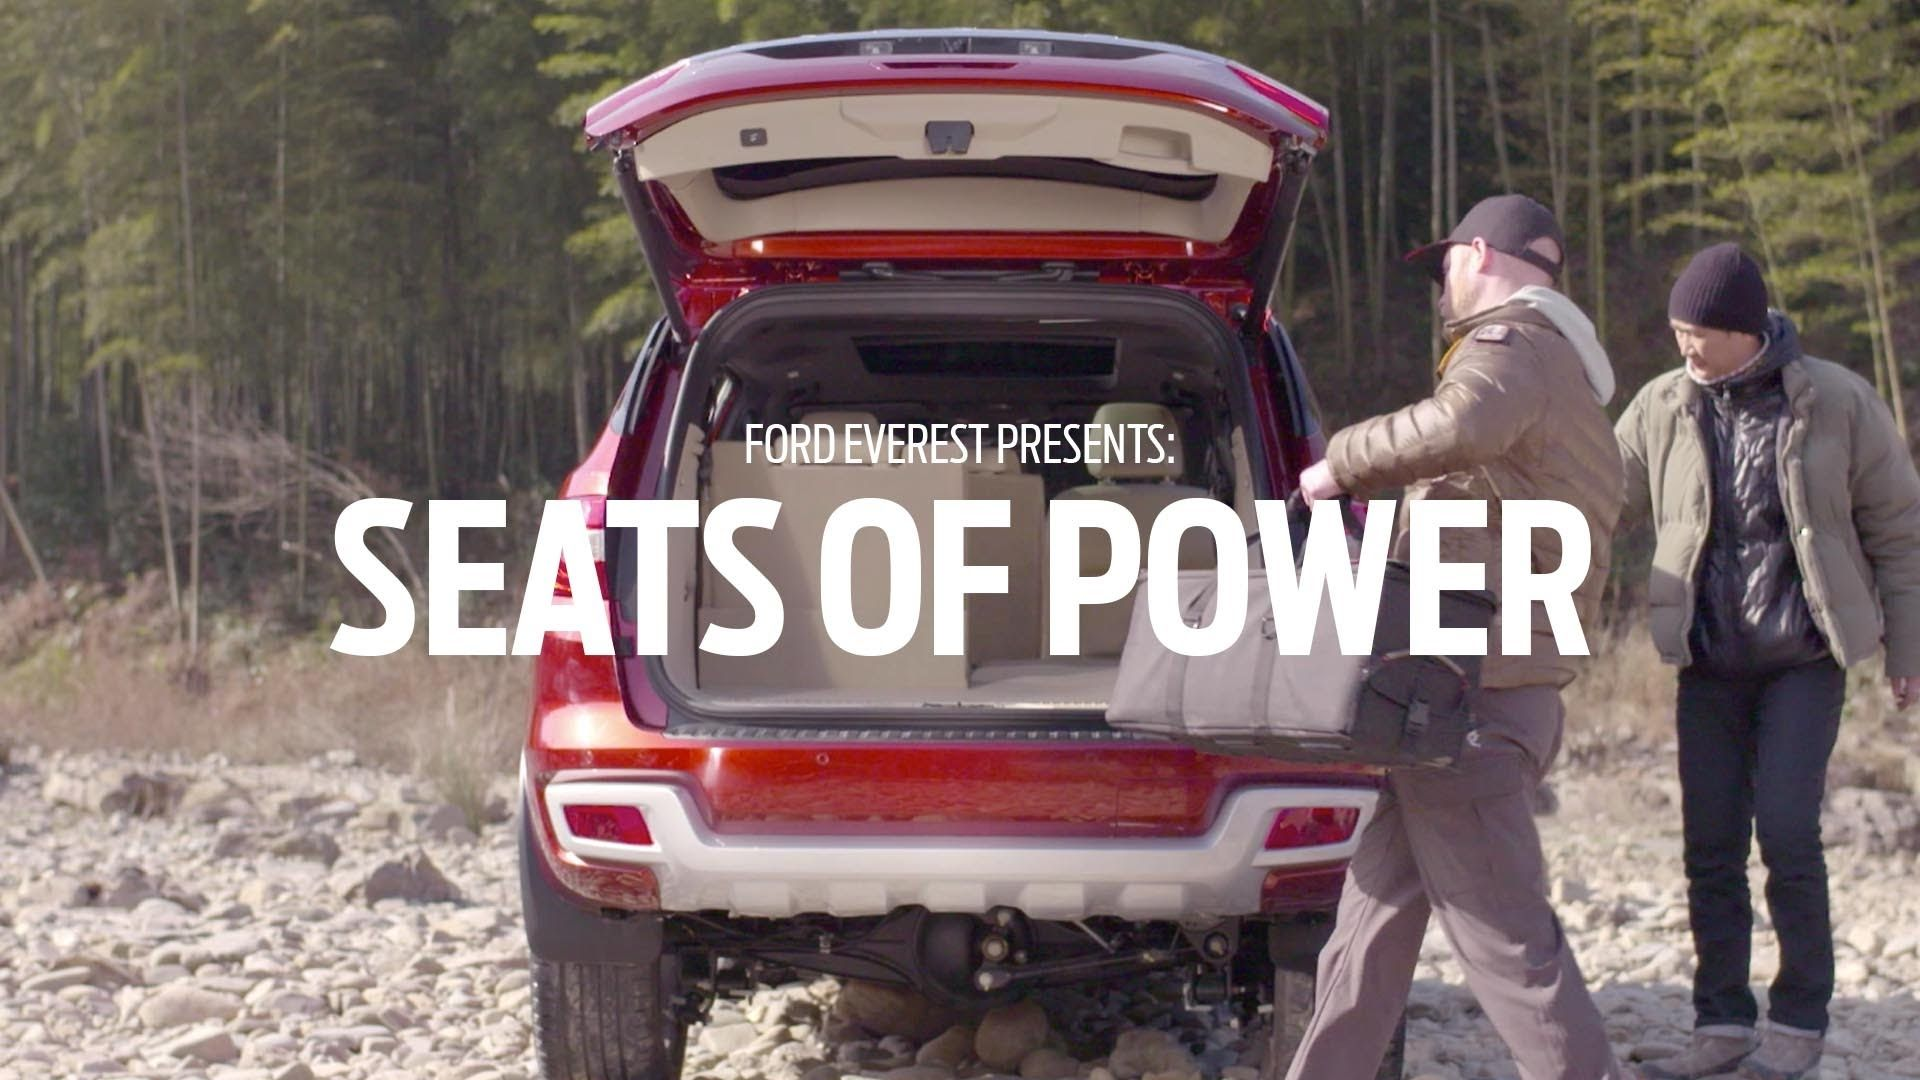 The all new ford everest guarantees total comfort with a massive 2010 liters of space